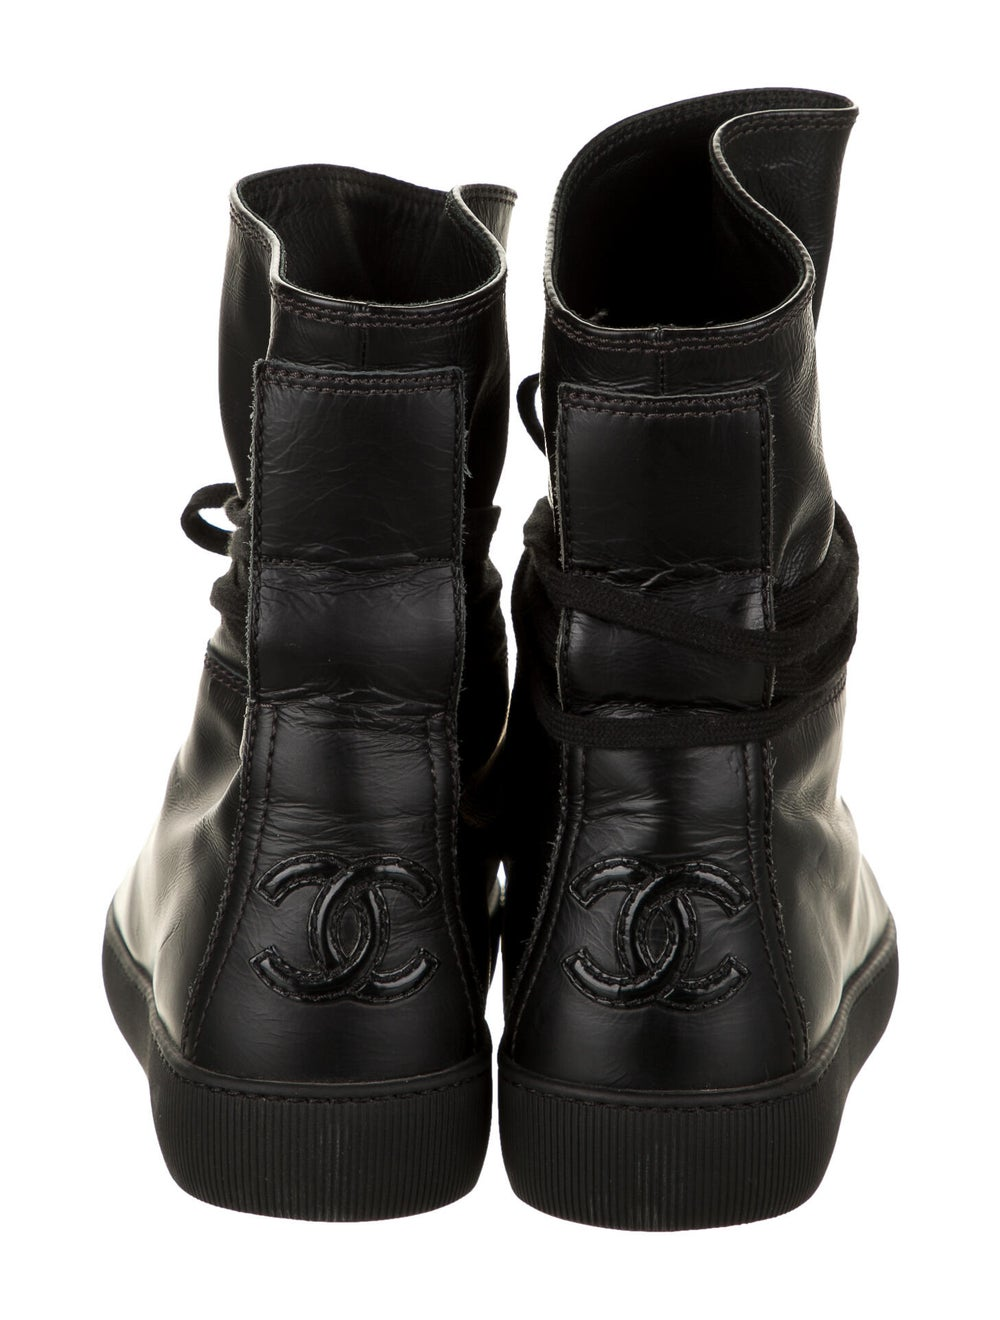 Chanel Leather Sneakers Wedge Sneakers Black - image 4